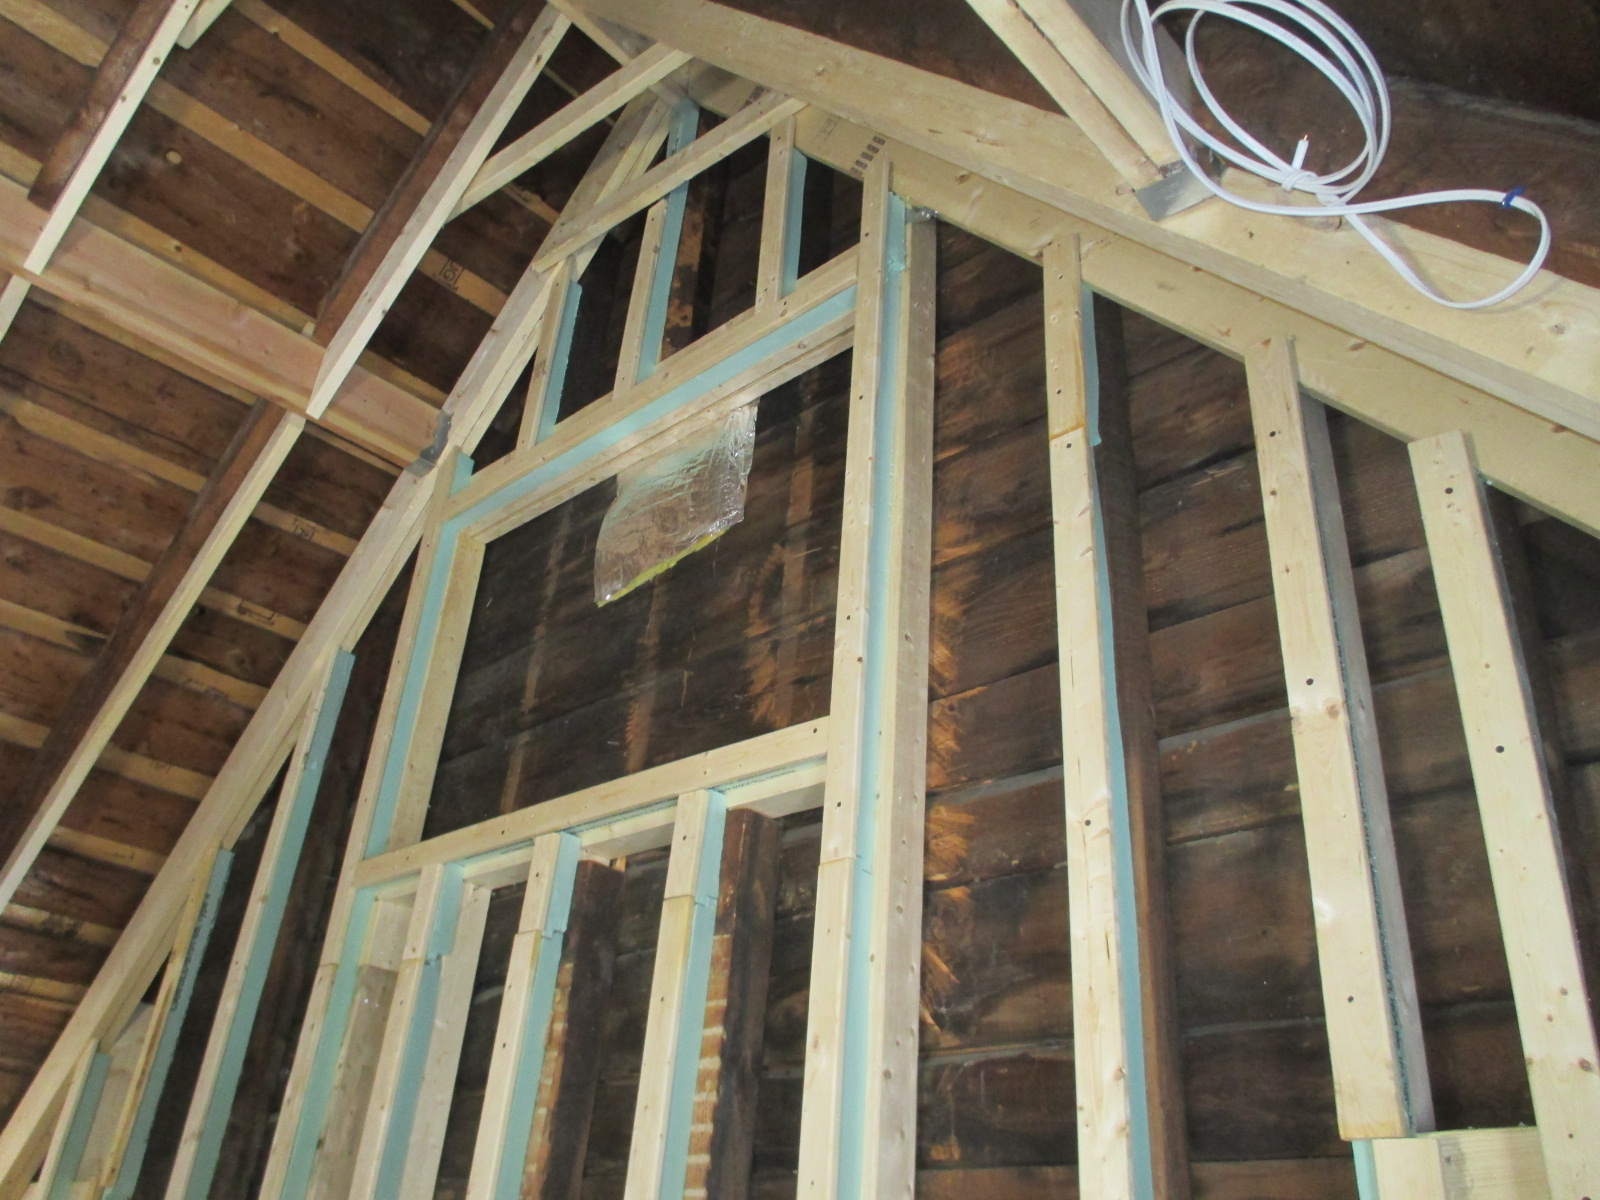 Additions include finishing previously unfinished parts of your home. How big is your attic?